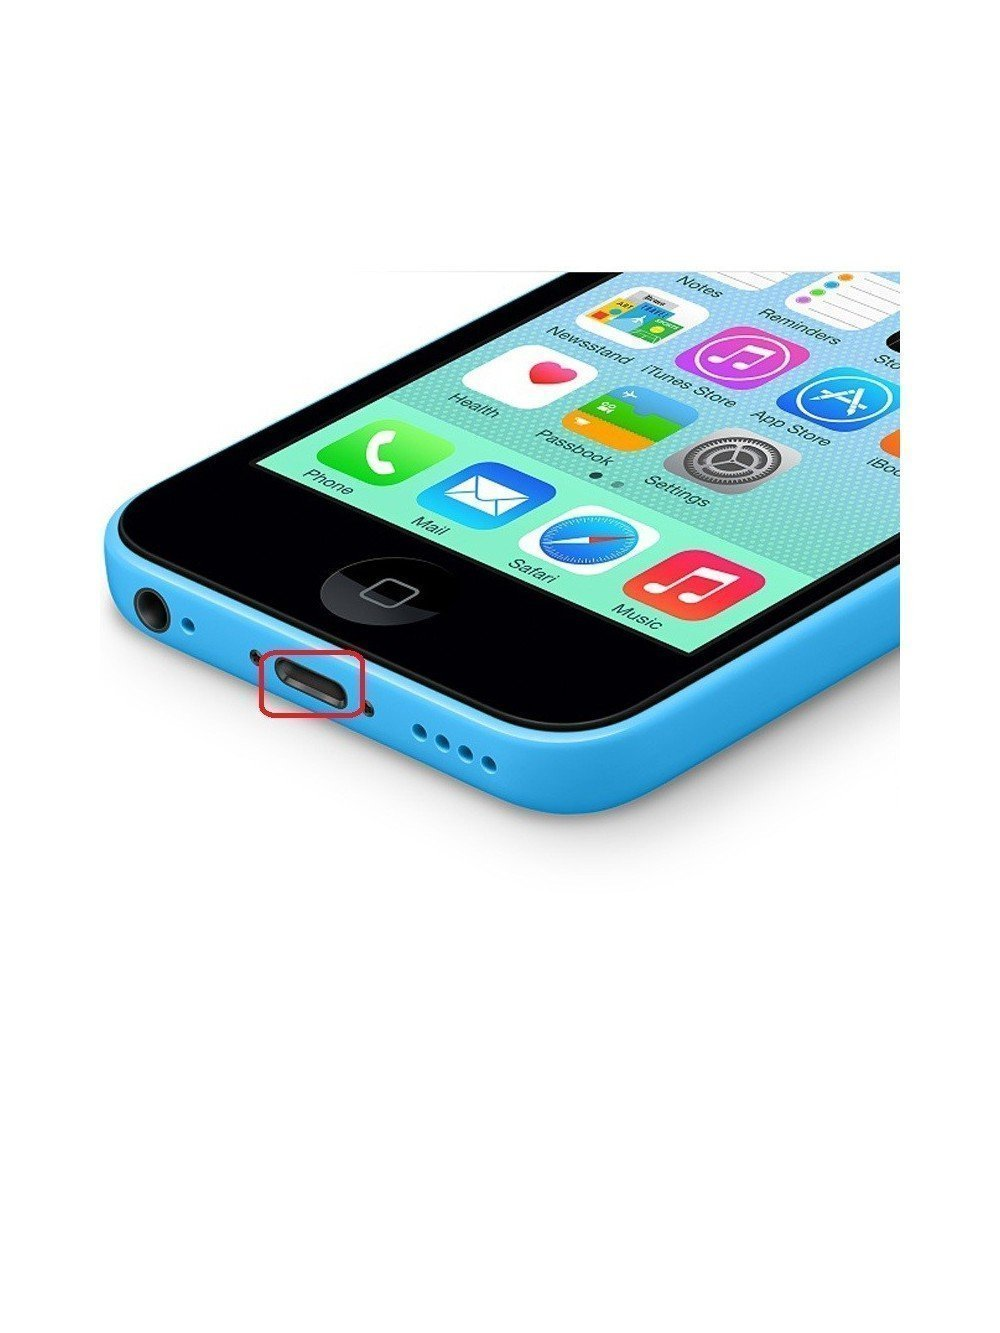 r parer dock iphone 5c connecteur de charge au luxembourg. Black Bedroom Furniture Sets. Home Design Ideas